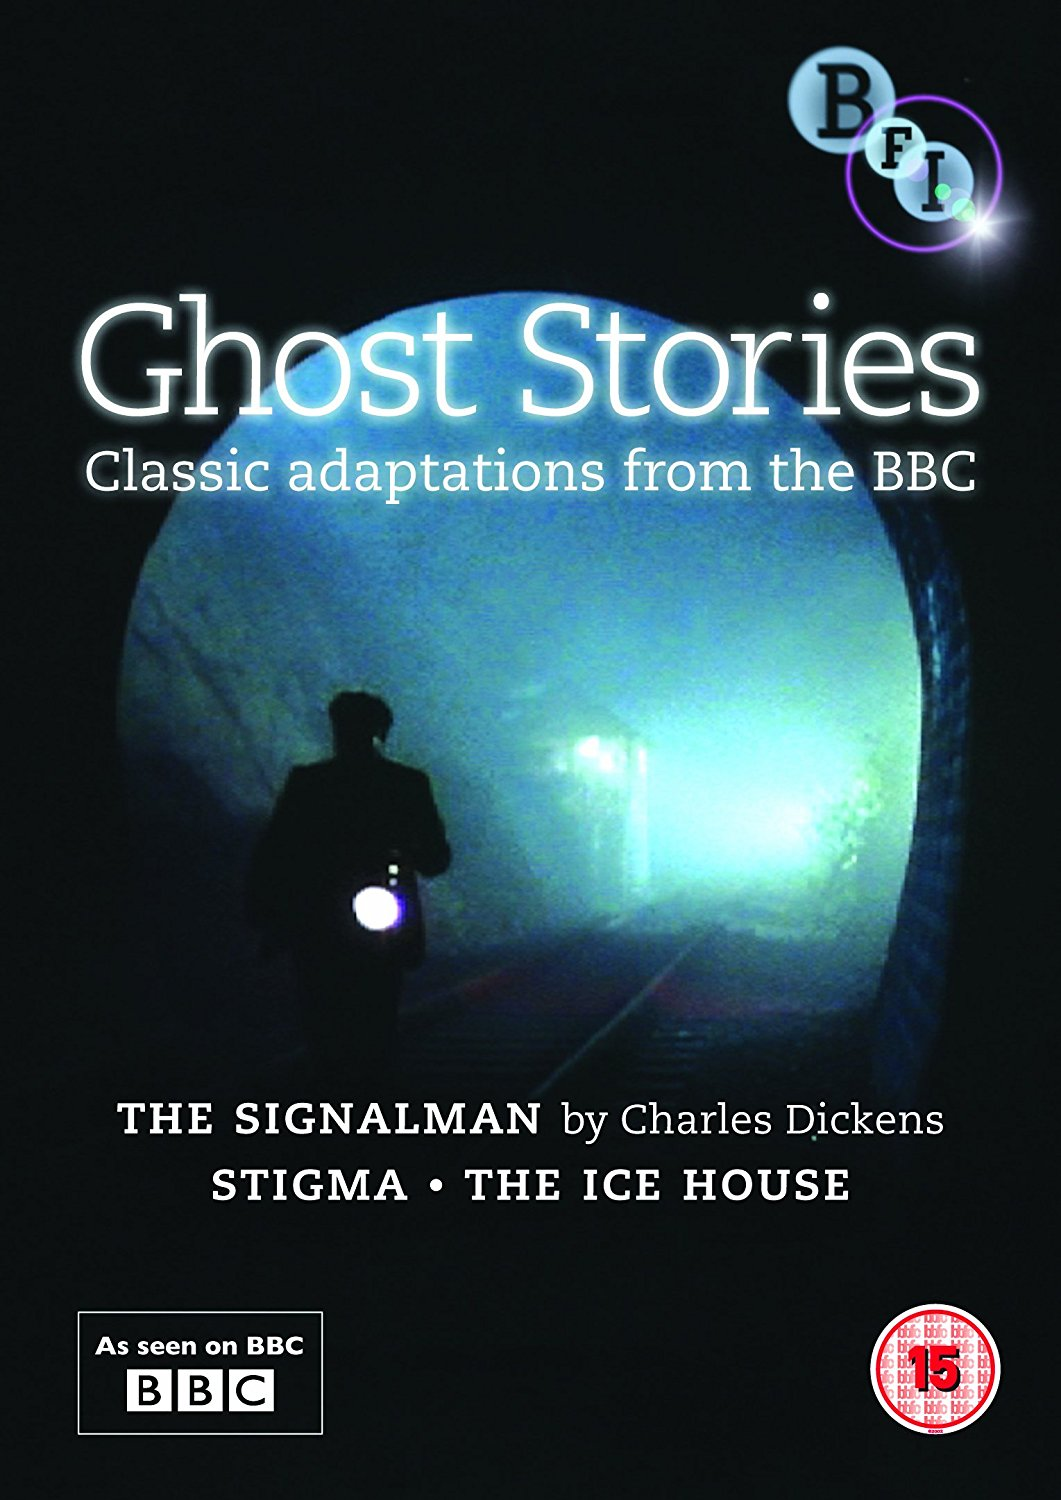 Severed Cinema review of Ghost Stories: Volume 4 with The Signalman, Stigma and The Ice House on DVD from BFI